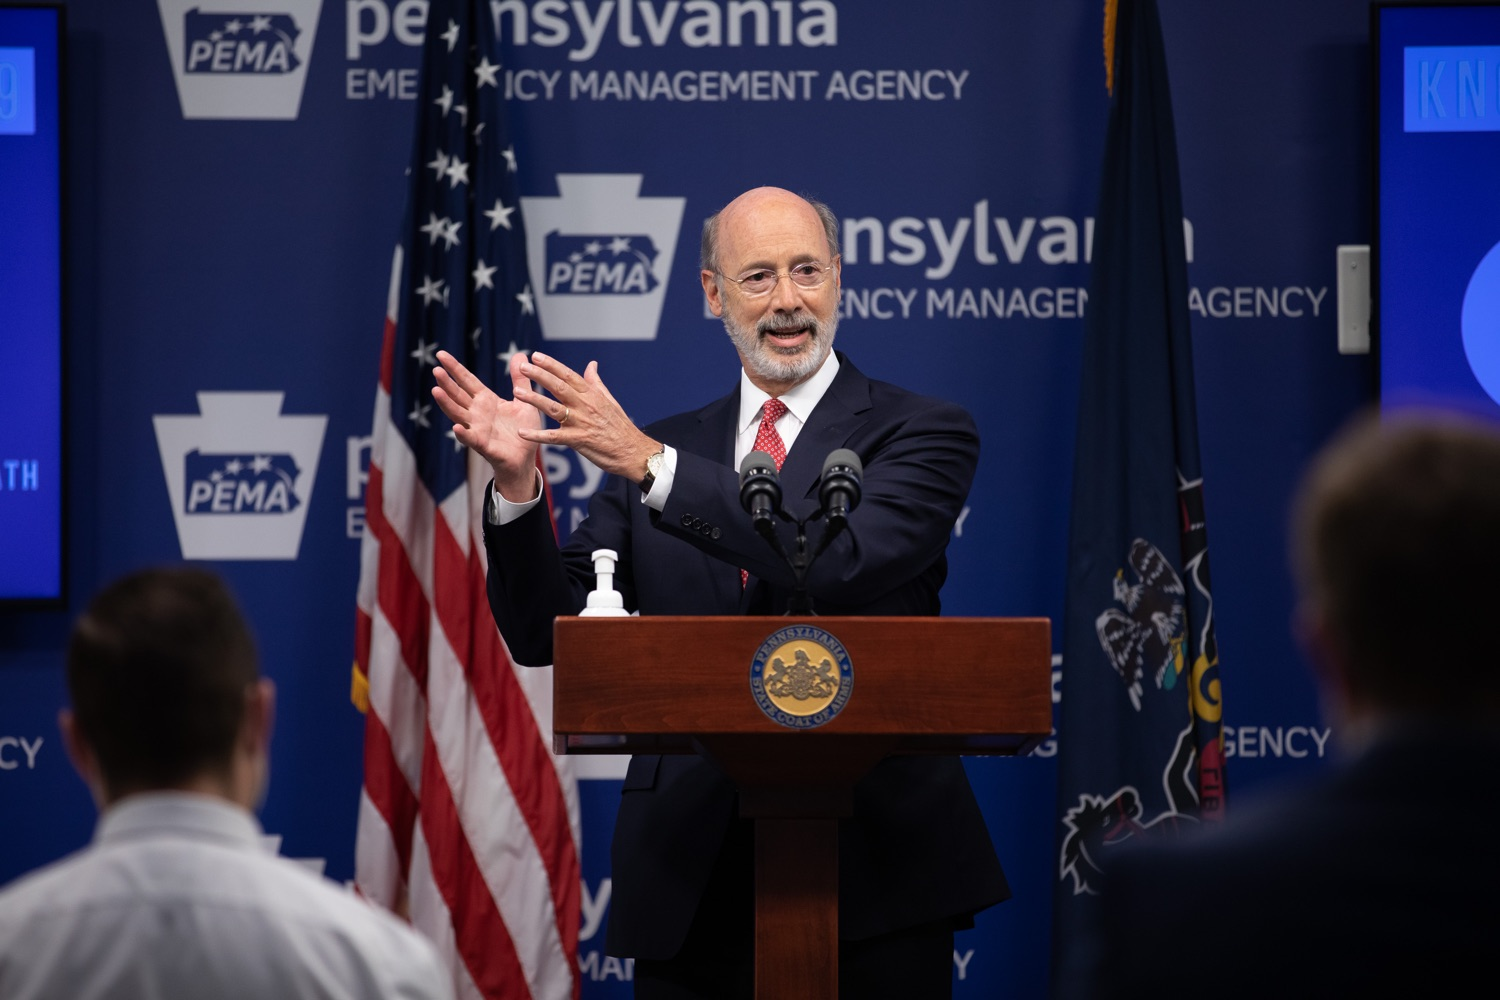 "<a href=""https://filesource.wostreaming.net/commonwealthofpa/photo/18091_gov_covid_update_dz_09.jpg"" target=""_blank"">⇣ Download Photo<br></a>Pennsylvania Governor Tom Wolf answering questions from the press.  As states across the country begin to reopen and nearly half are seeing COVID-19 cases rise, Governor Tom Wolf announced Friday that Pennsylvania is not one of them. ...Today at a daily COVID briefing with Health Secretary Dr. Rachel Levine, he noted another milestone: The Centers for Disease Control and Prevention proprietary data for states indicates that we are one of just three states that has had a downward trajectory of COVID- 19 cases for more than 42 days. The other two states are Montana and Hawaii.  JUNE 17, 2020 - HARRISBURG, PA."